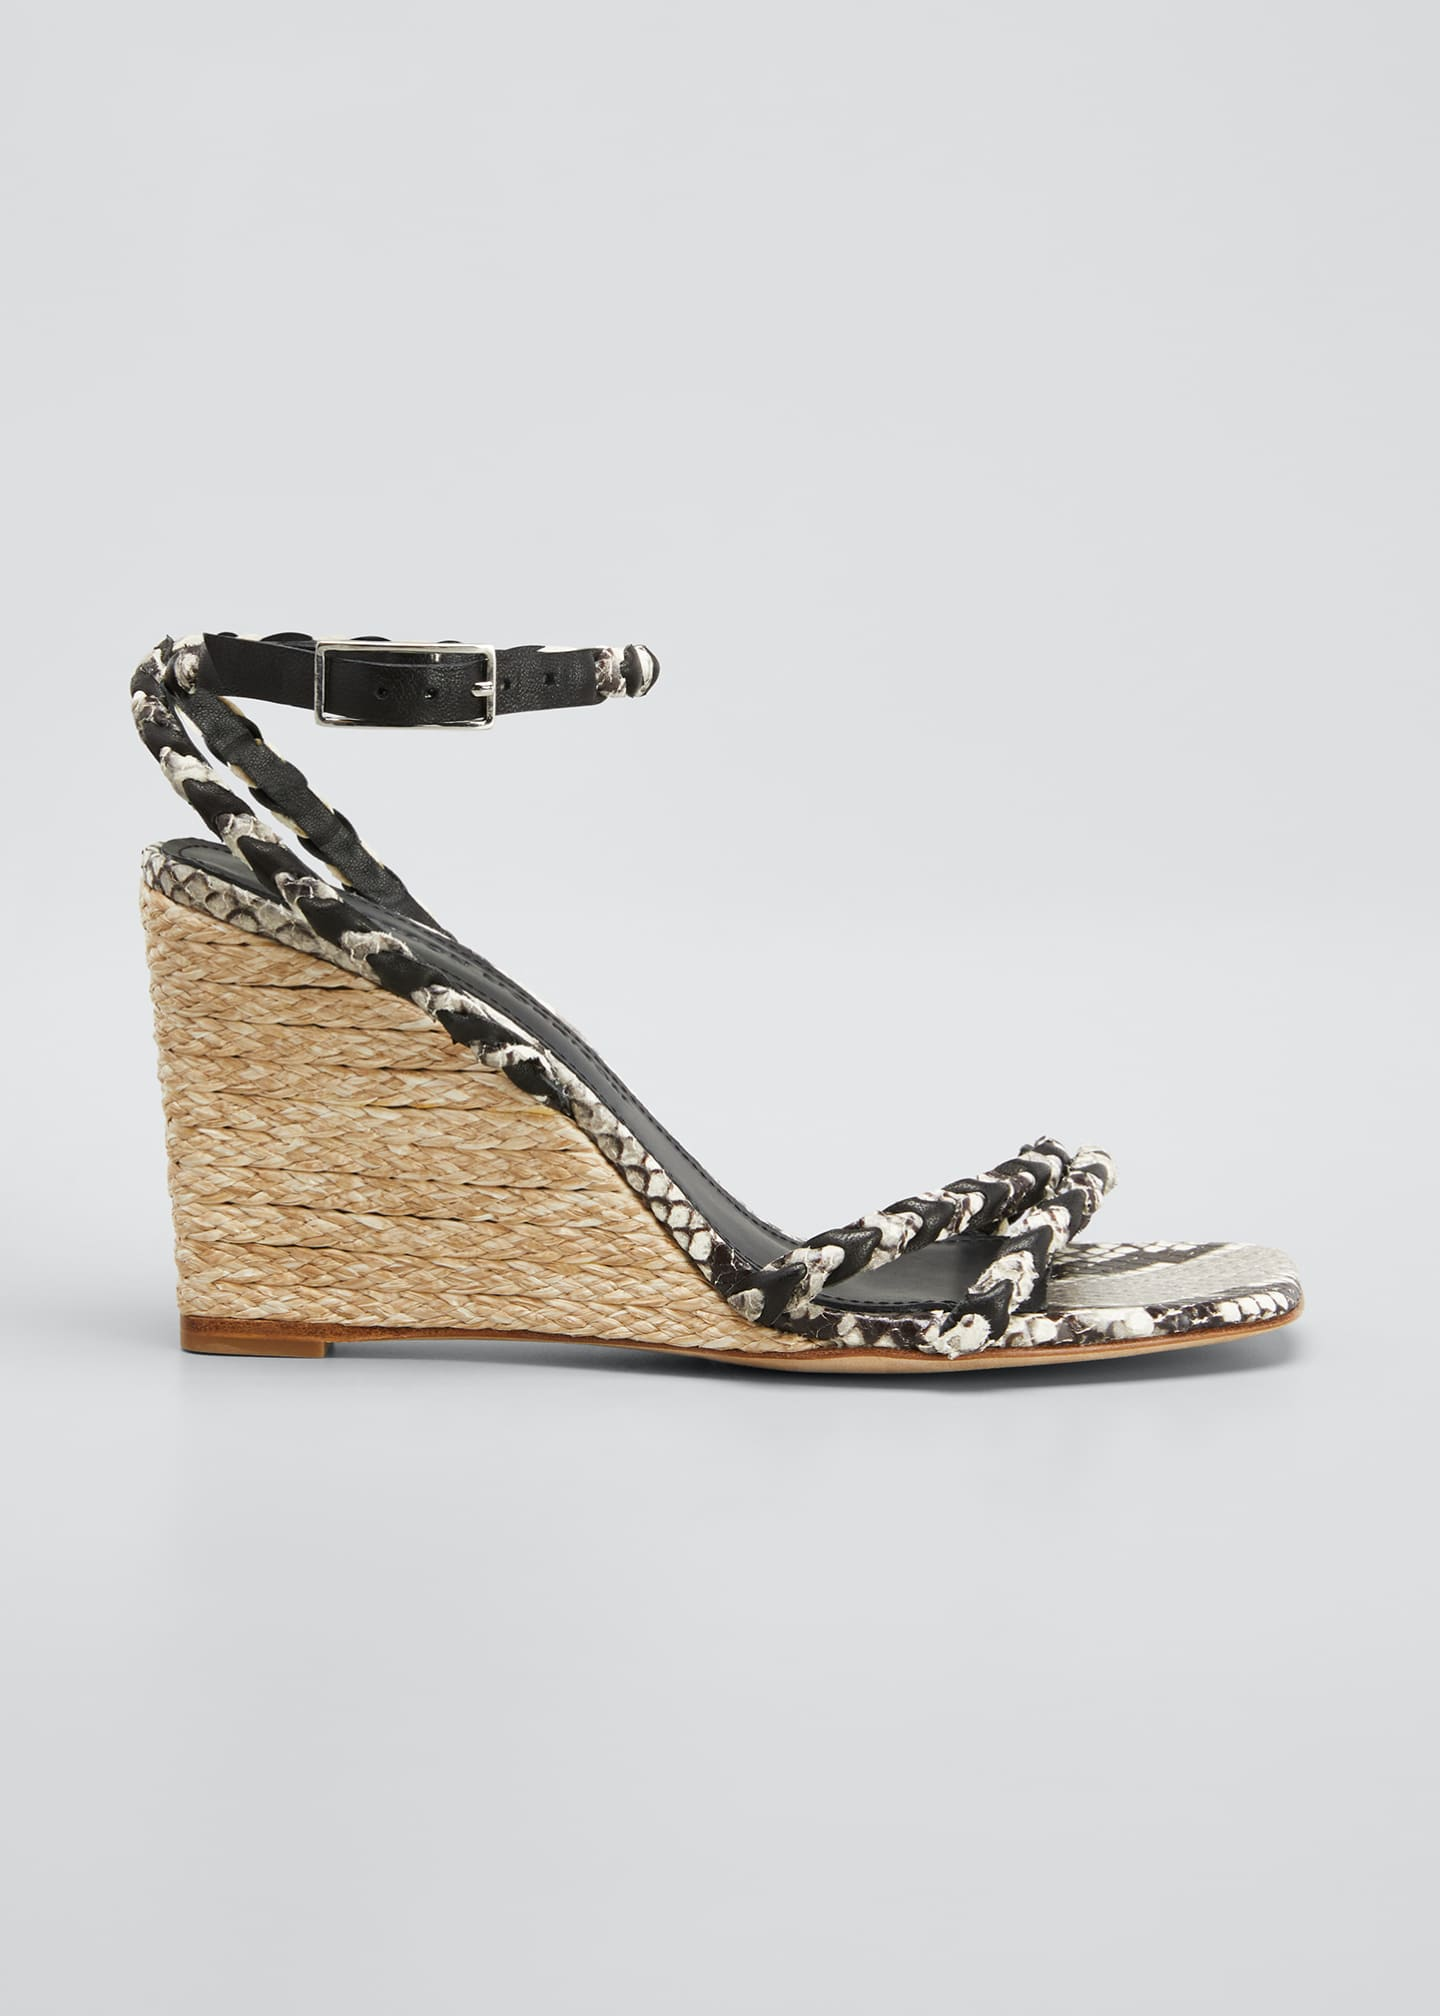 Image 1 of 5: Justice Wedge Sandals